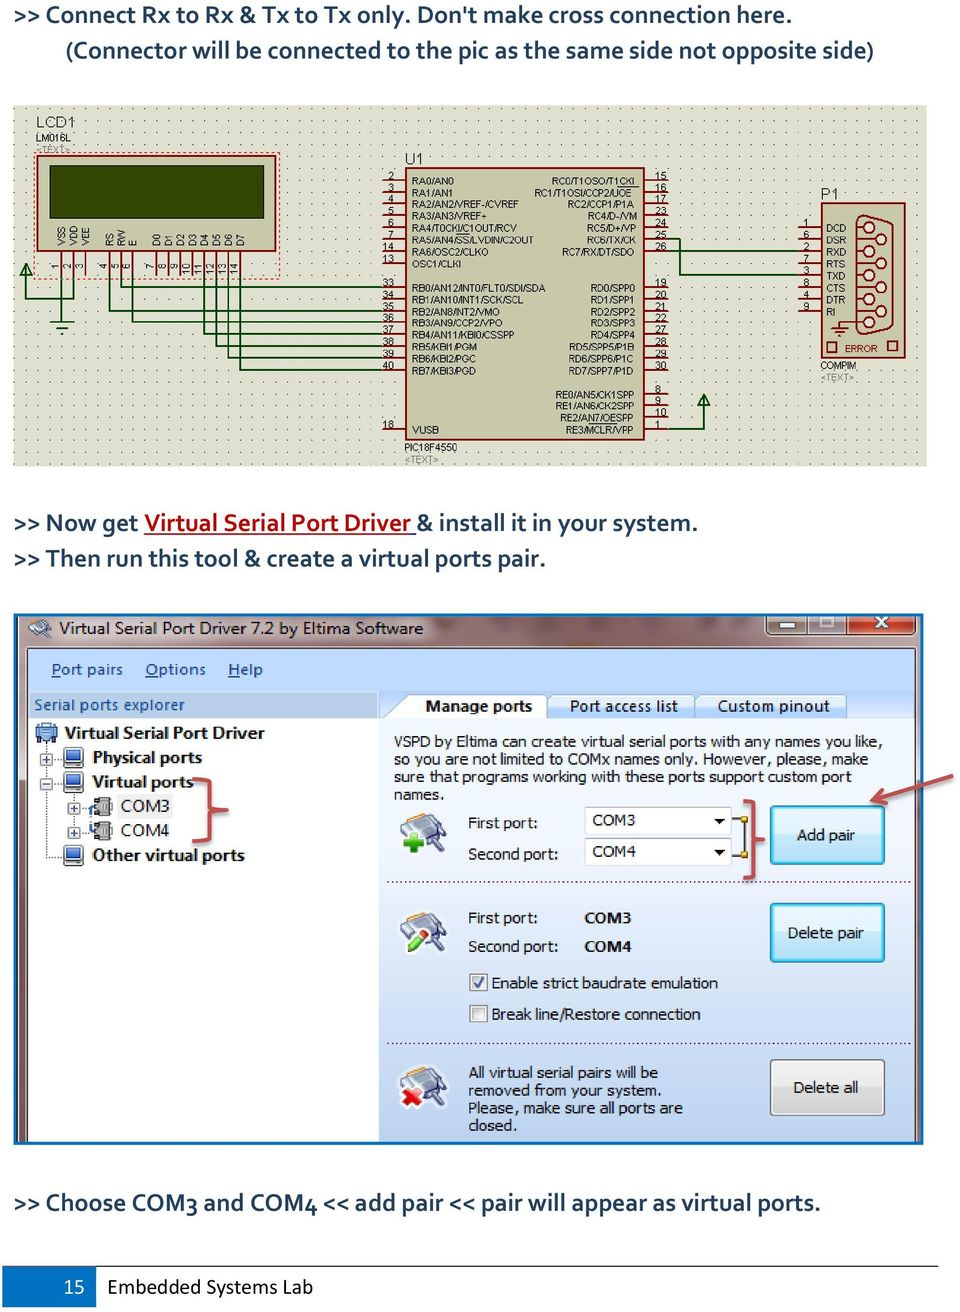 Virtual Serial Port Driver & install it in your system.